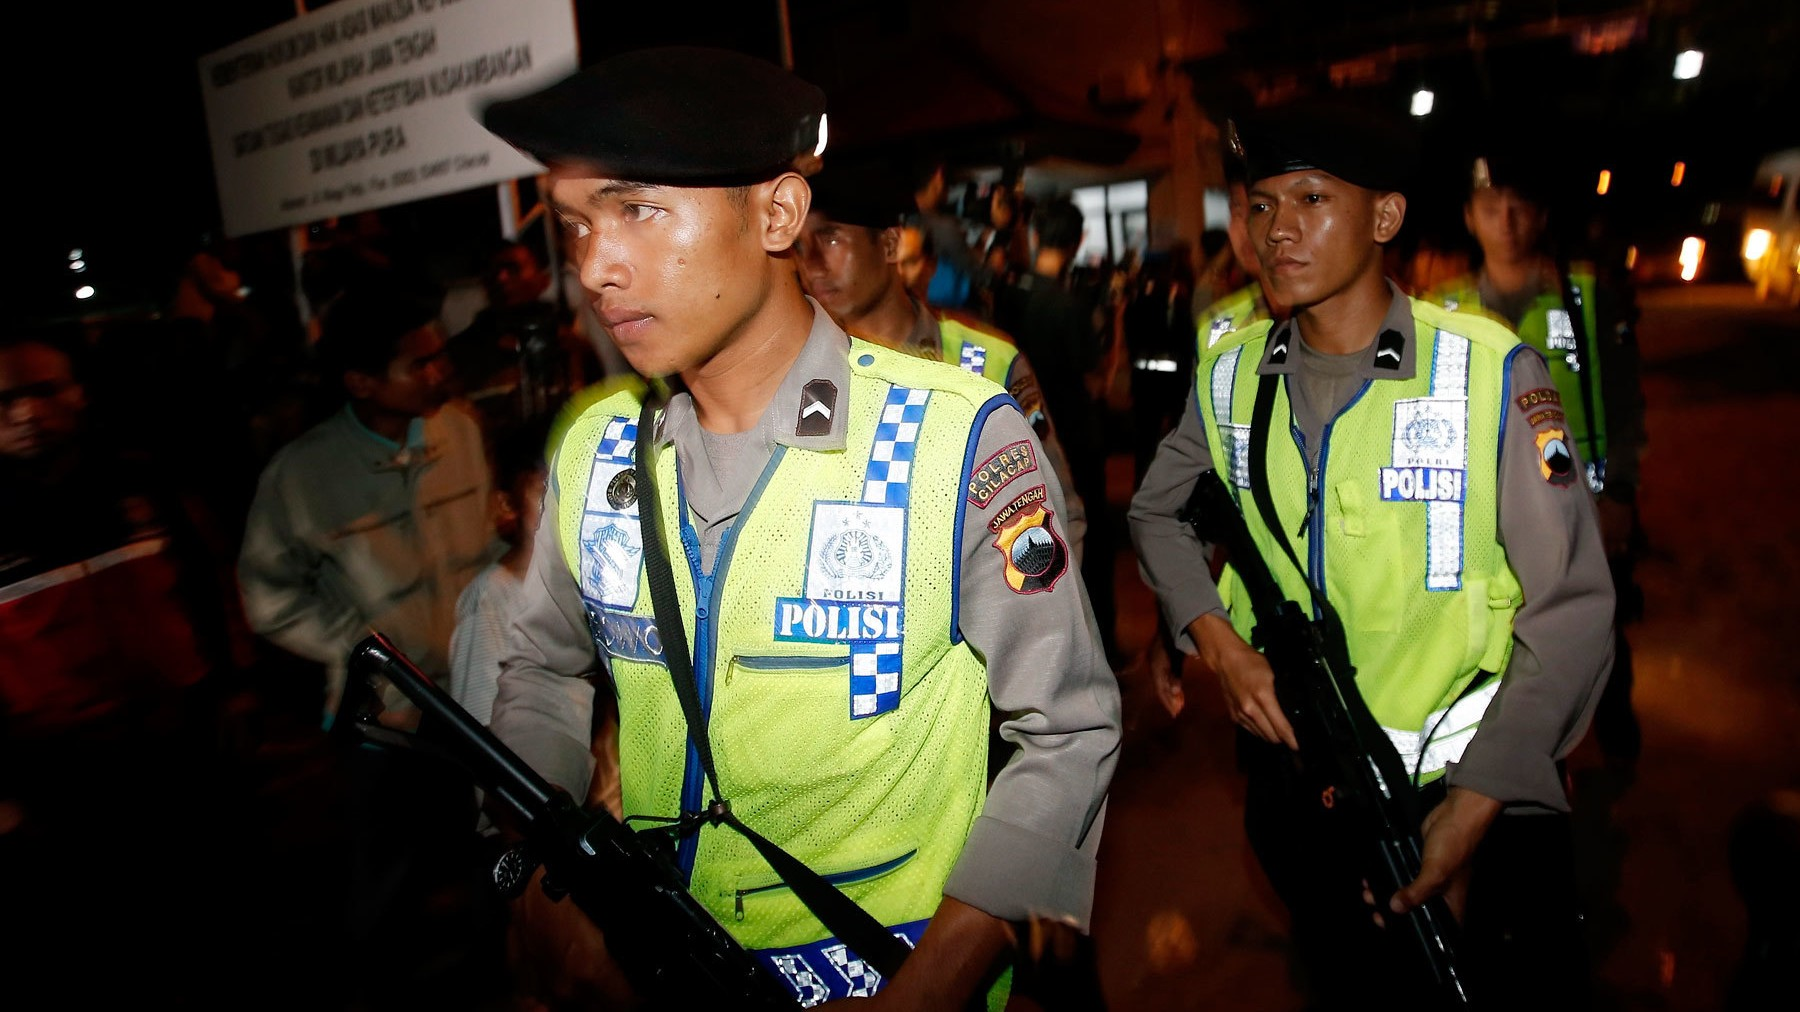 Indonesia Is Preparing to Execute More than a Dozen People for Drug Crimes